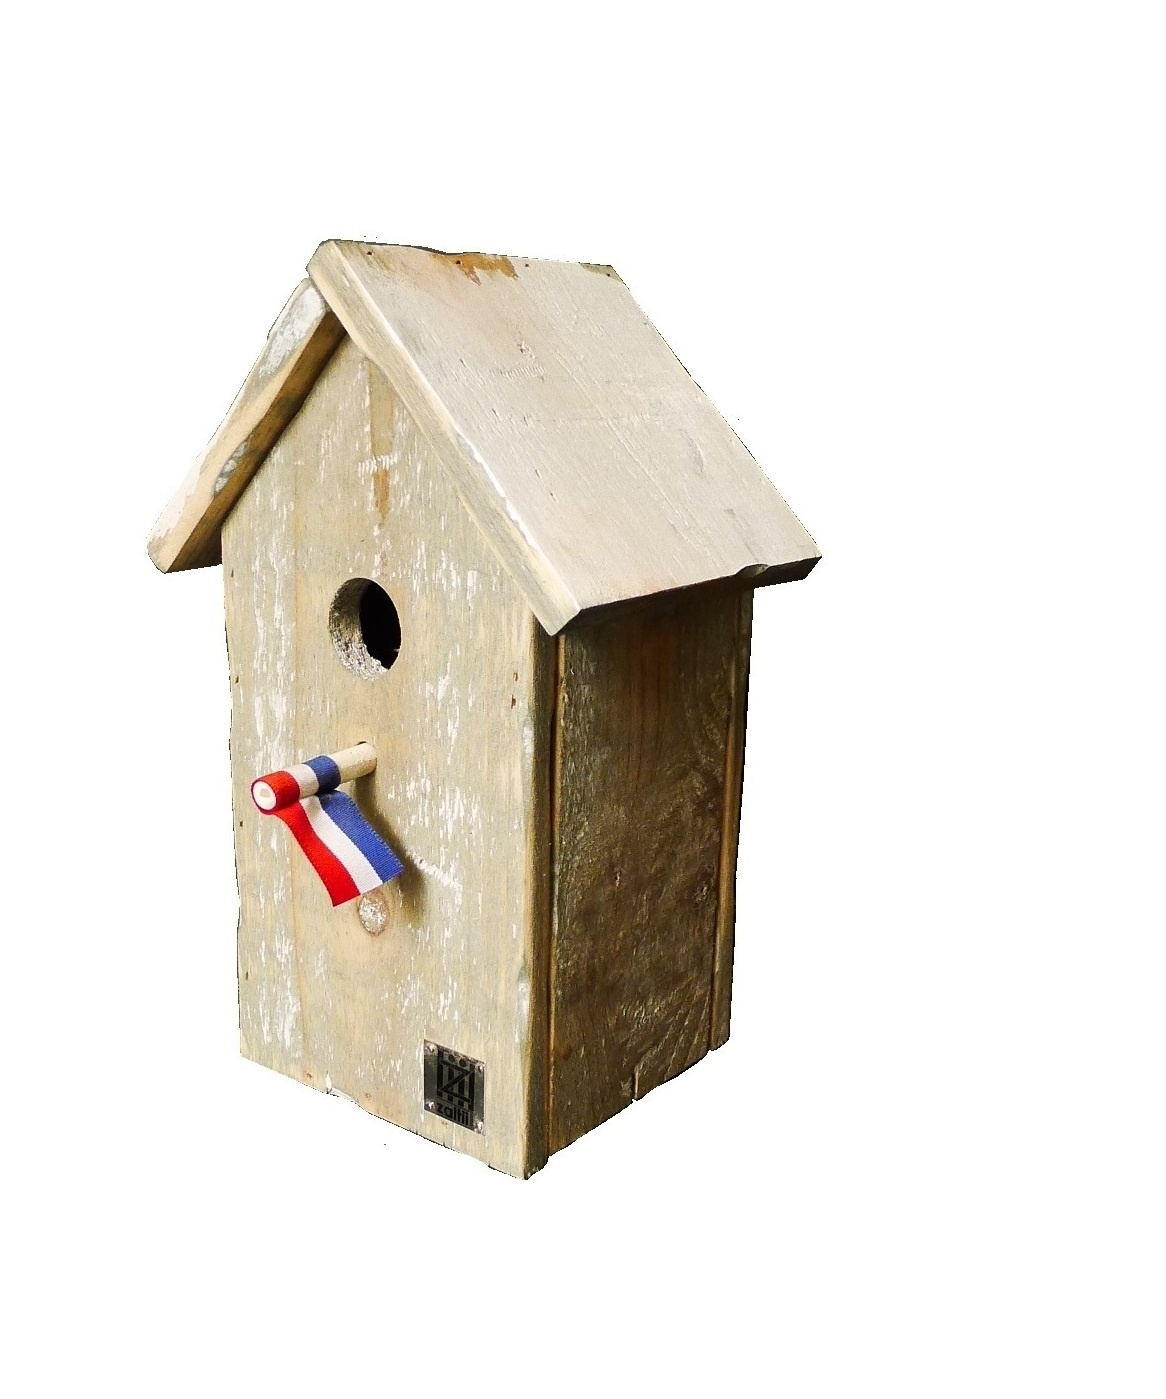 birdhouse old dutch stB pointed roof-1